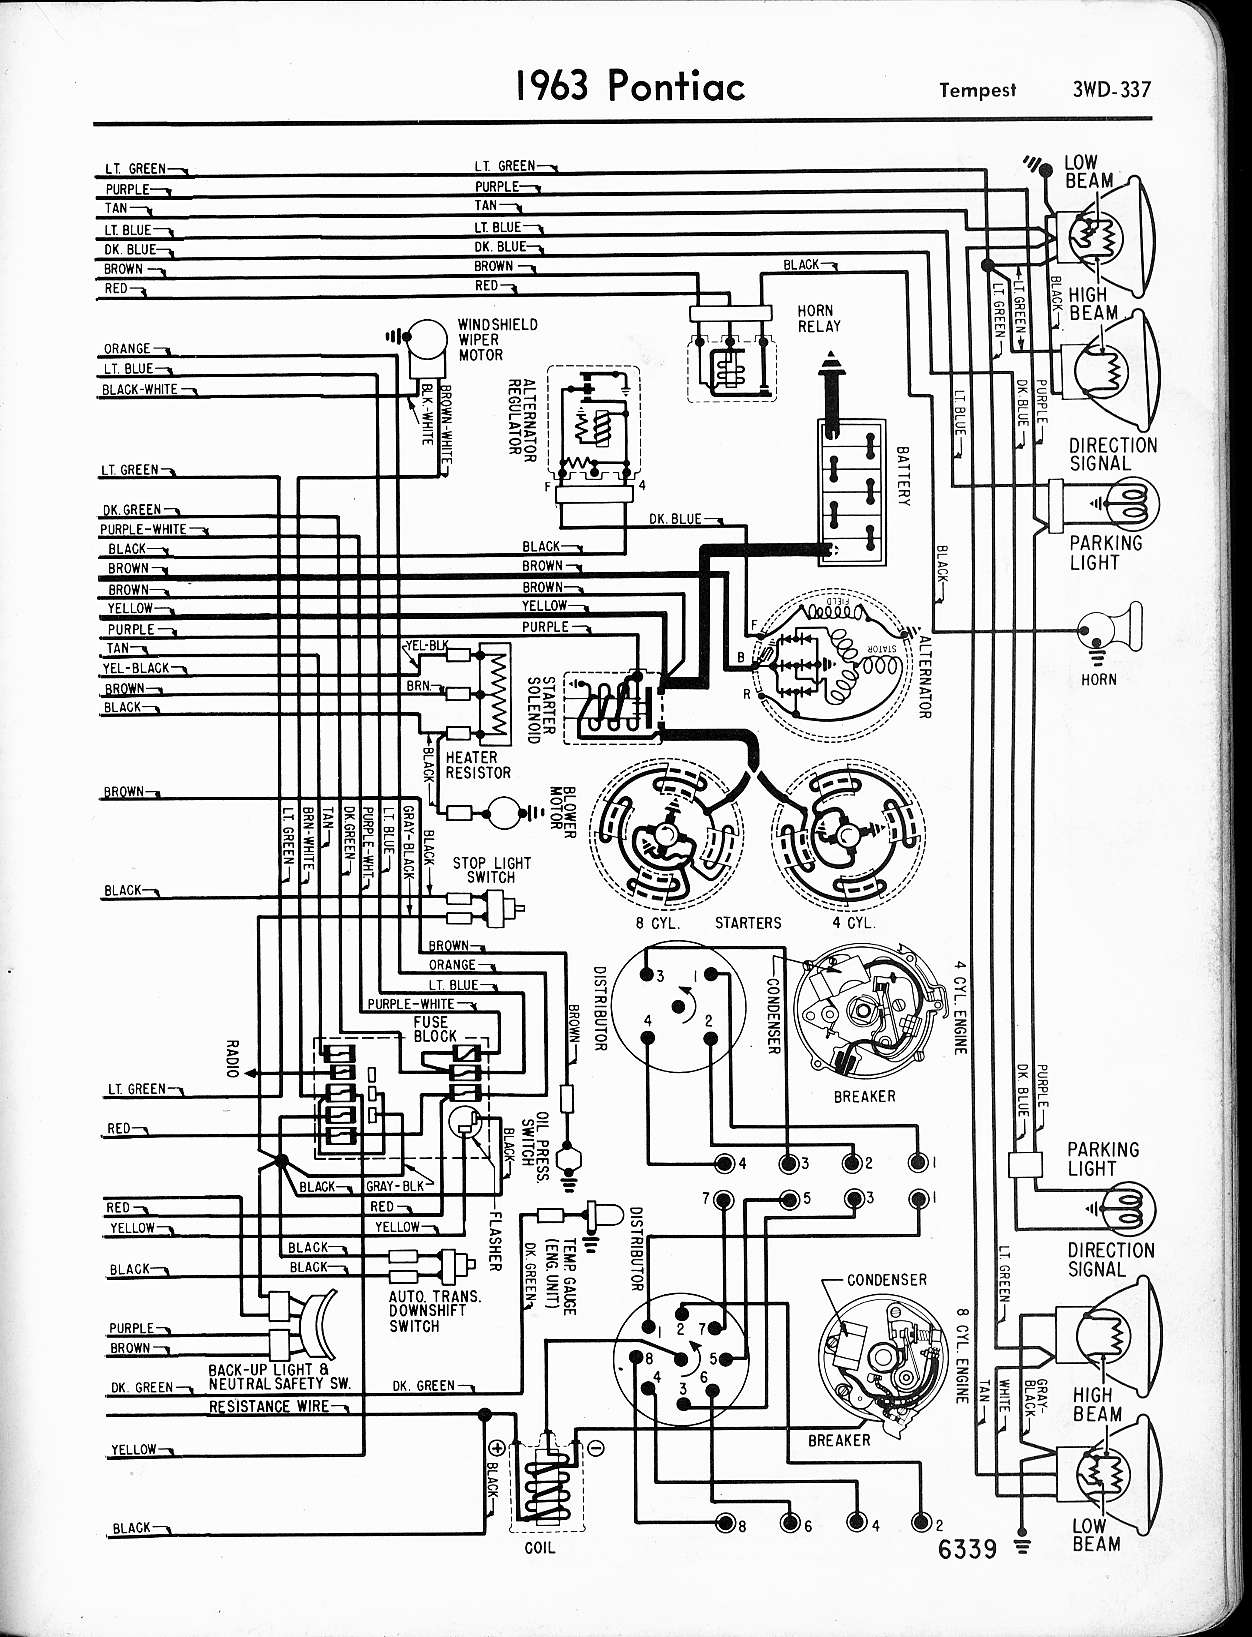 wallace racing wiring diagrams rh wallaceracing com 69 Corvette Wiring Diagram 69 Corvette Wiring Diagram